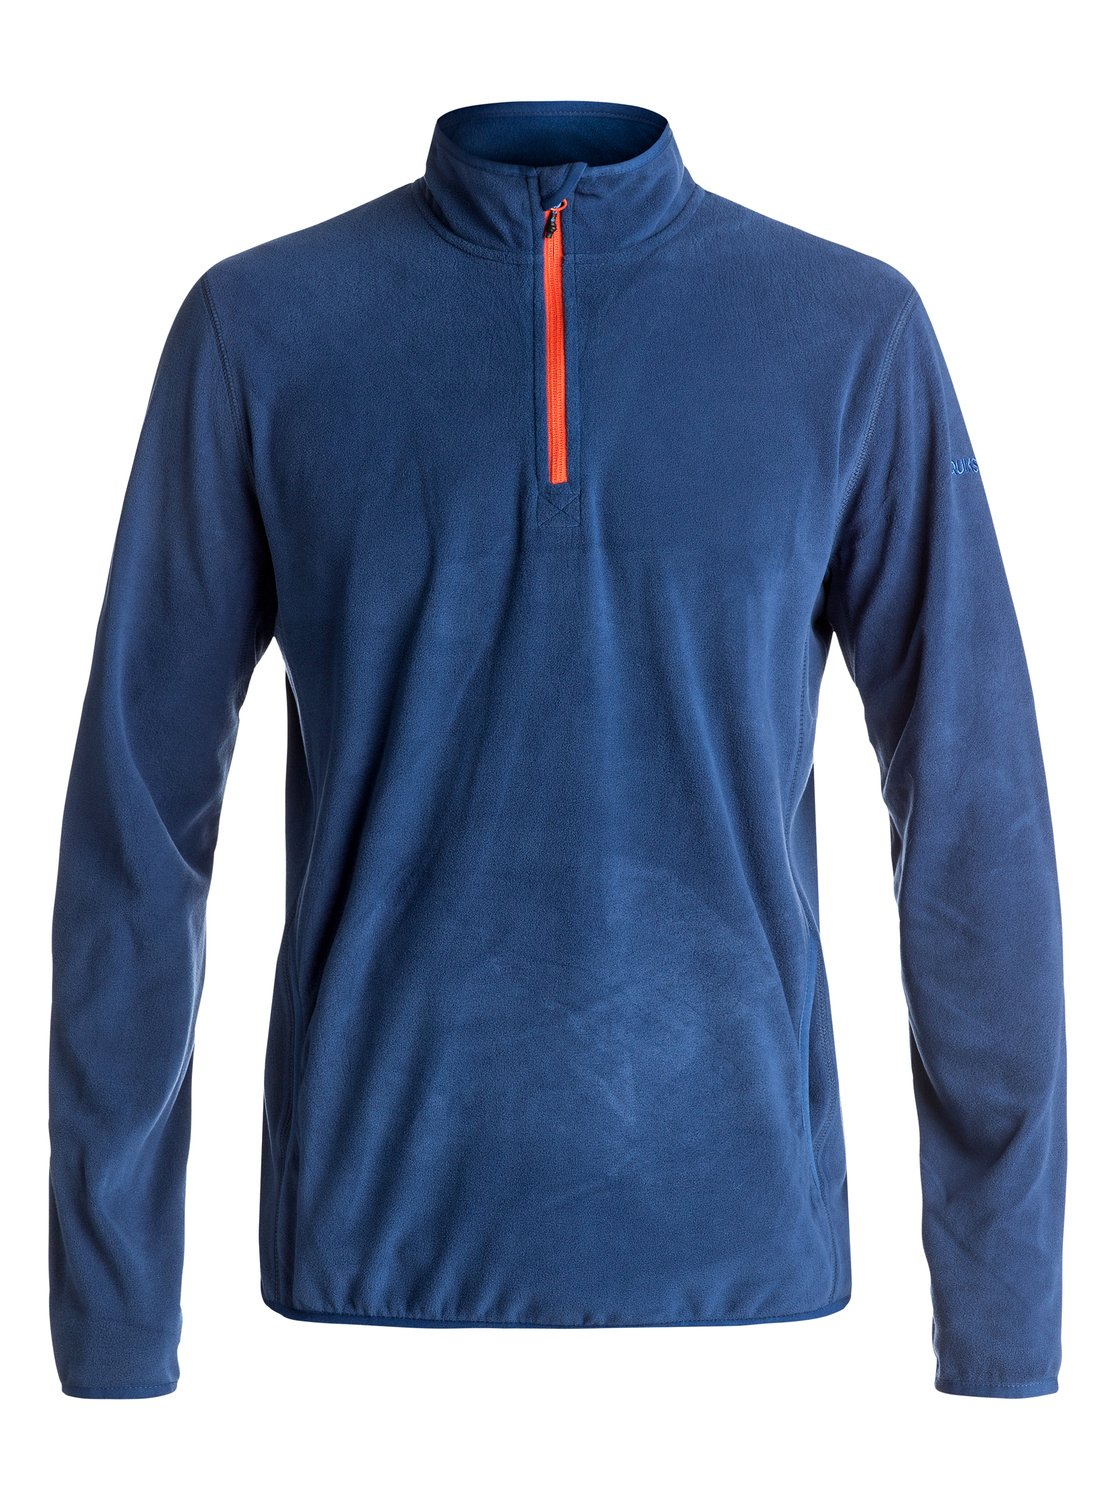 Aker - Half-Zip Technical Fleece